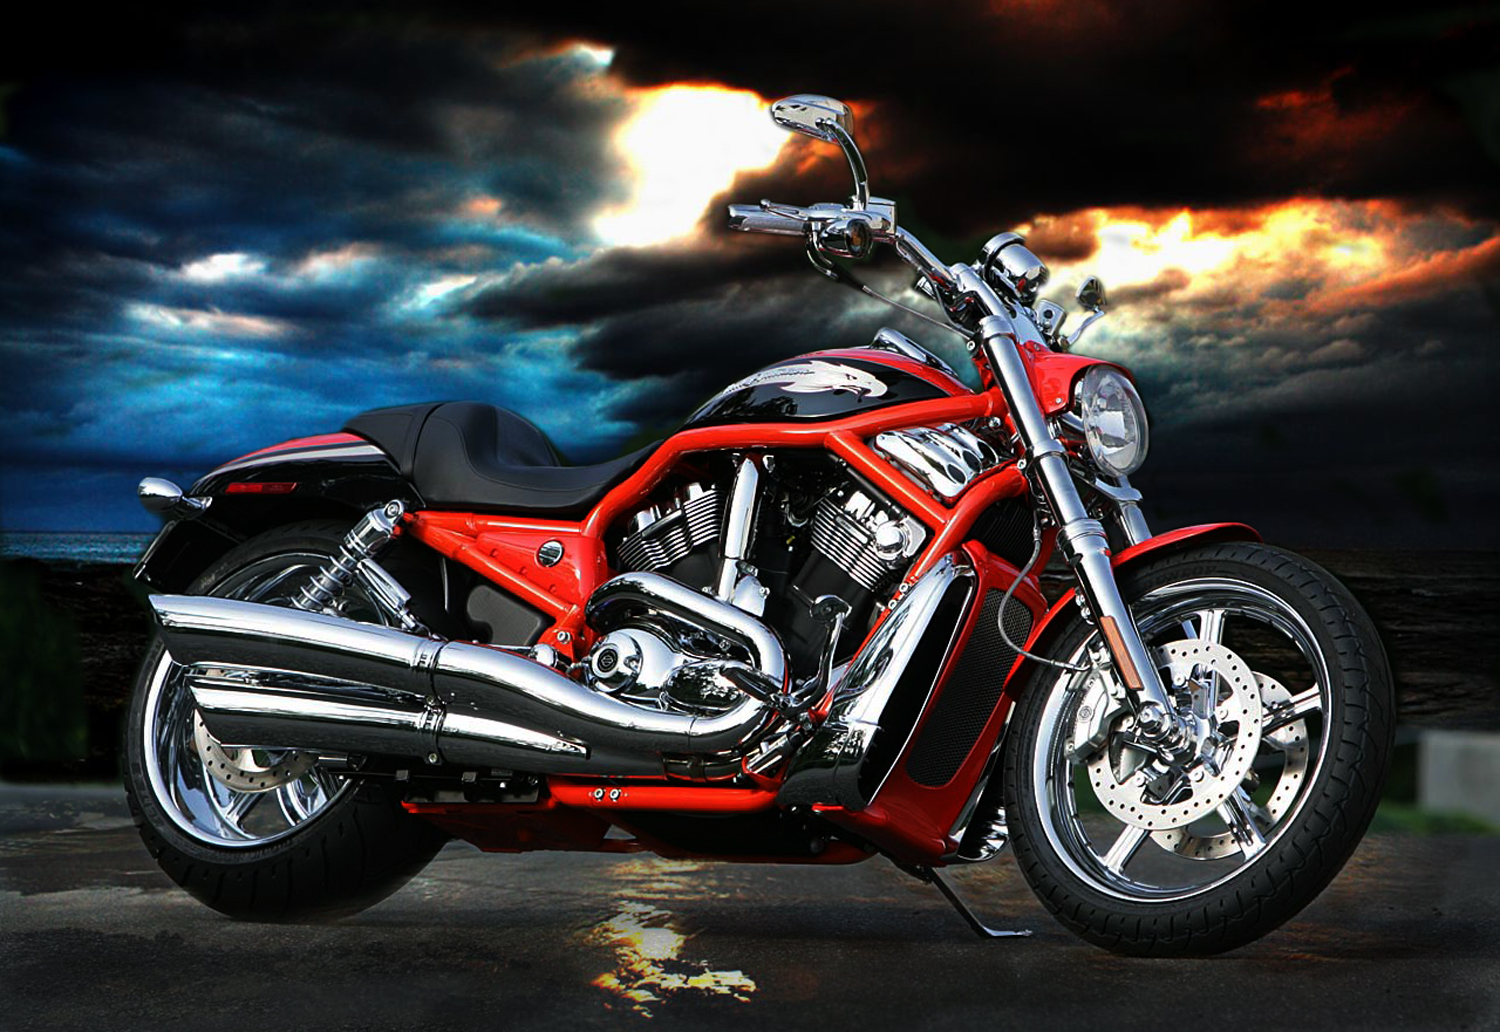 Harley-davidson v photo - 1